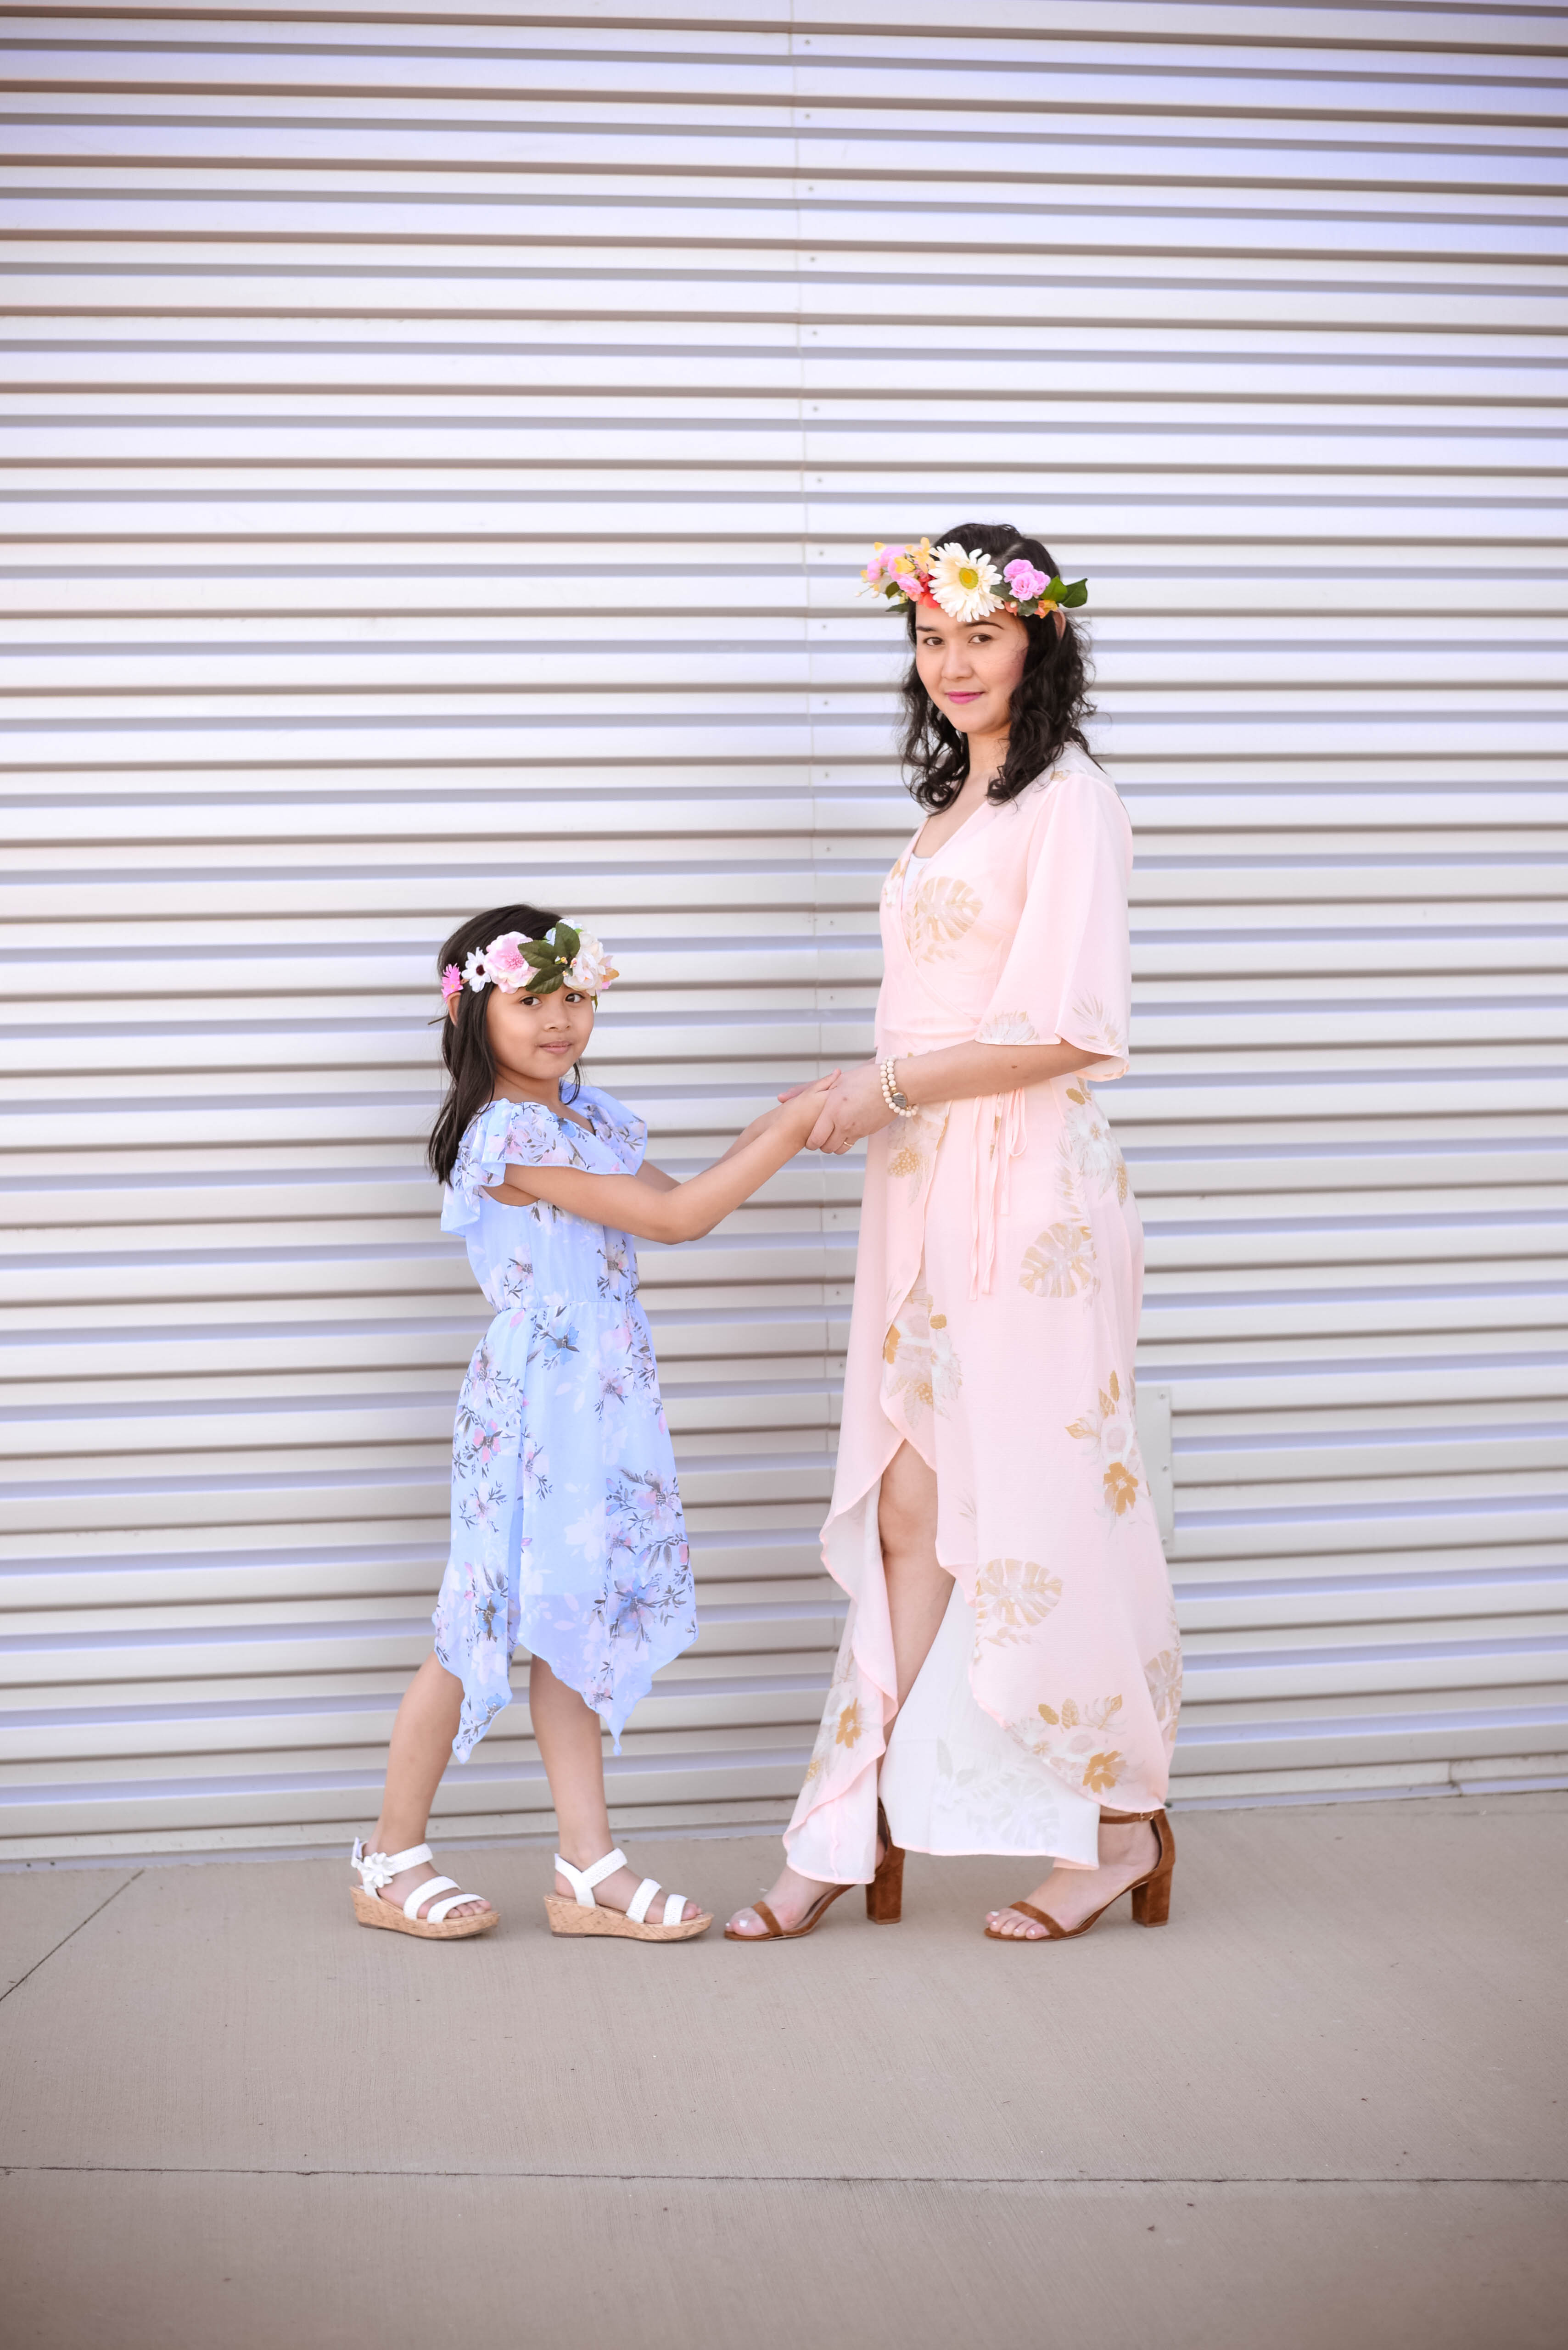 Mom And Daughter Bedroom Ideas: Mother And Daughter Spring Dresses